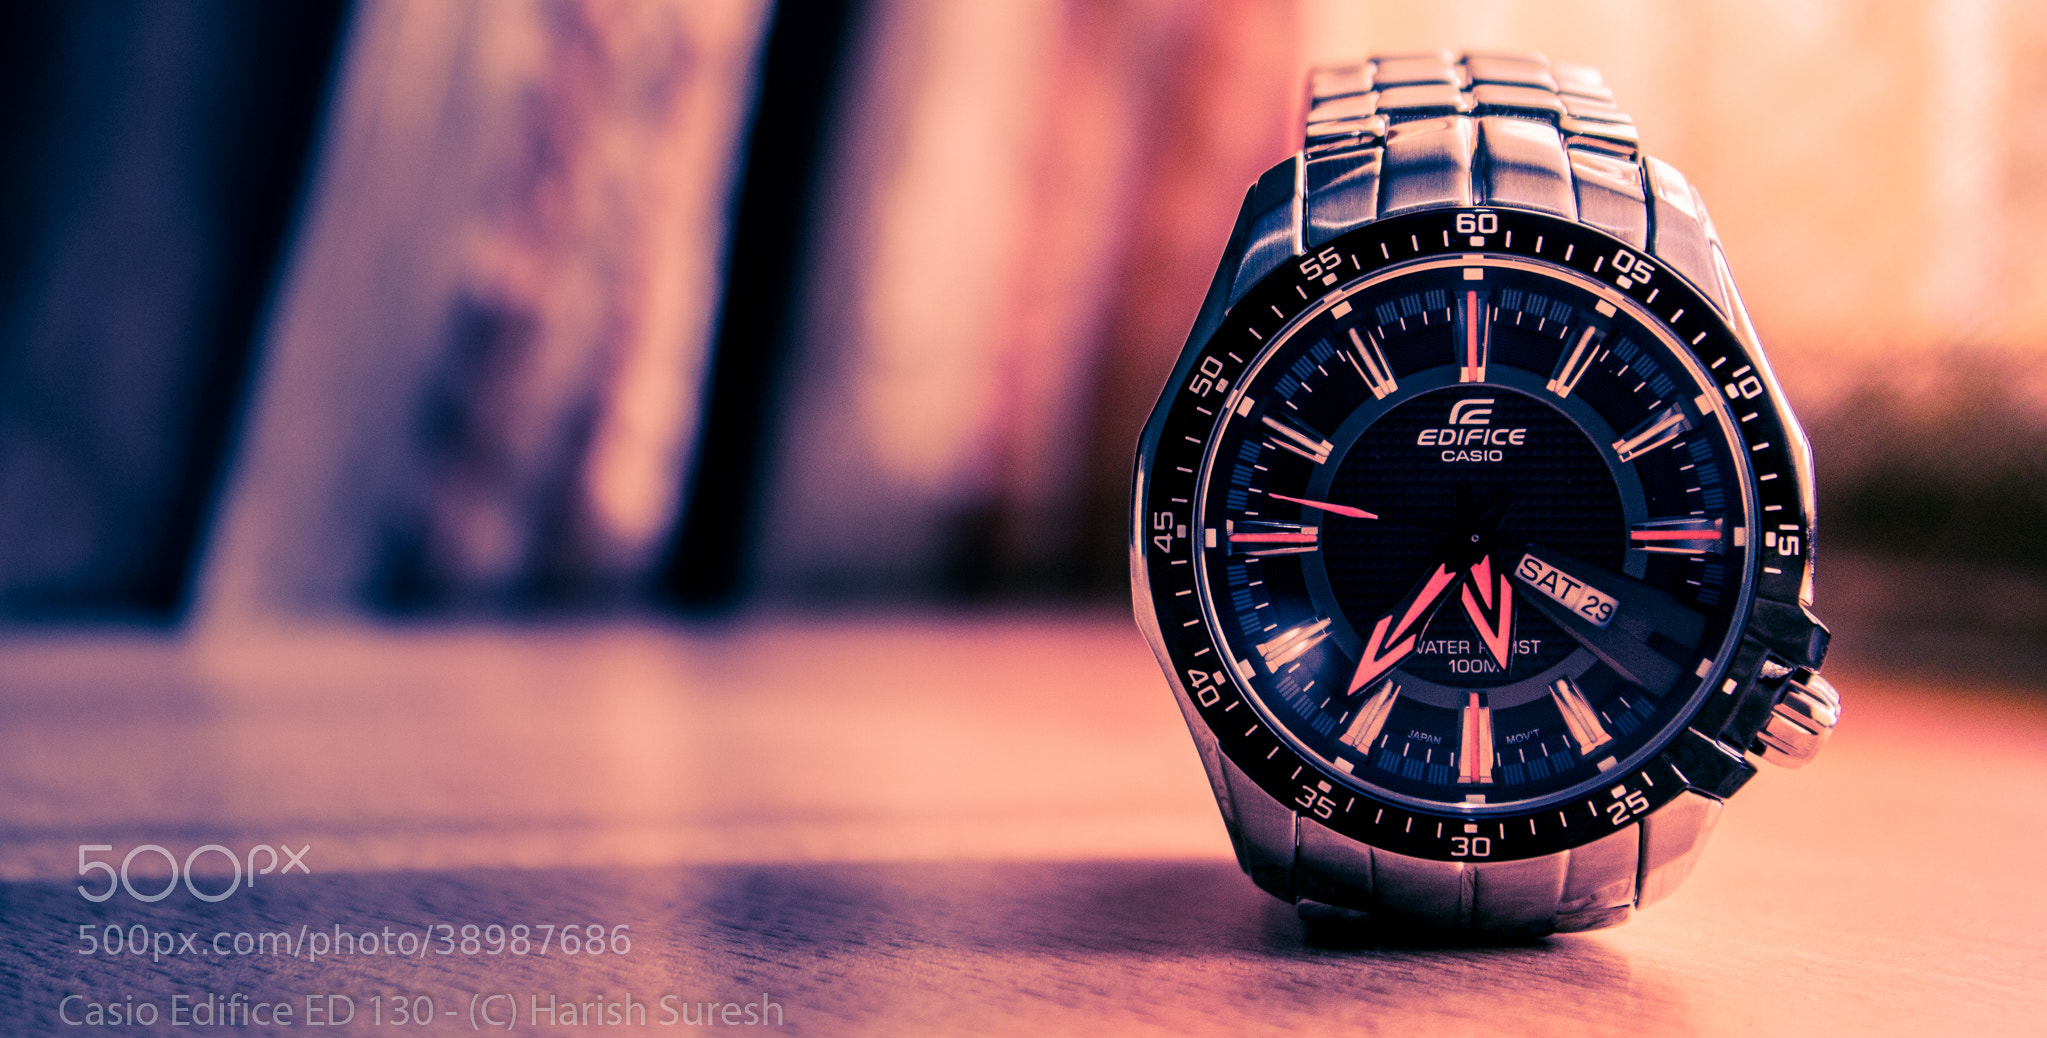 Photograph Shooting the Casio Edifice ED 130 by Harish Suresh on 500px